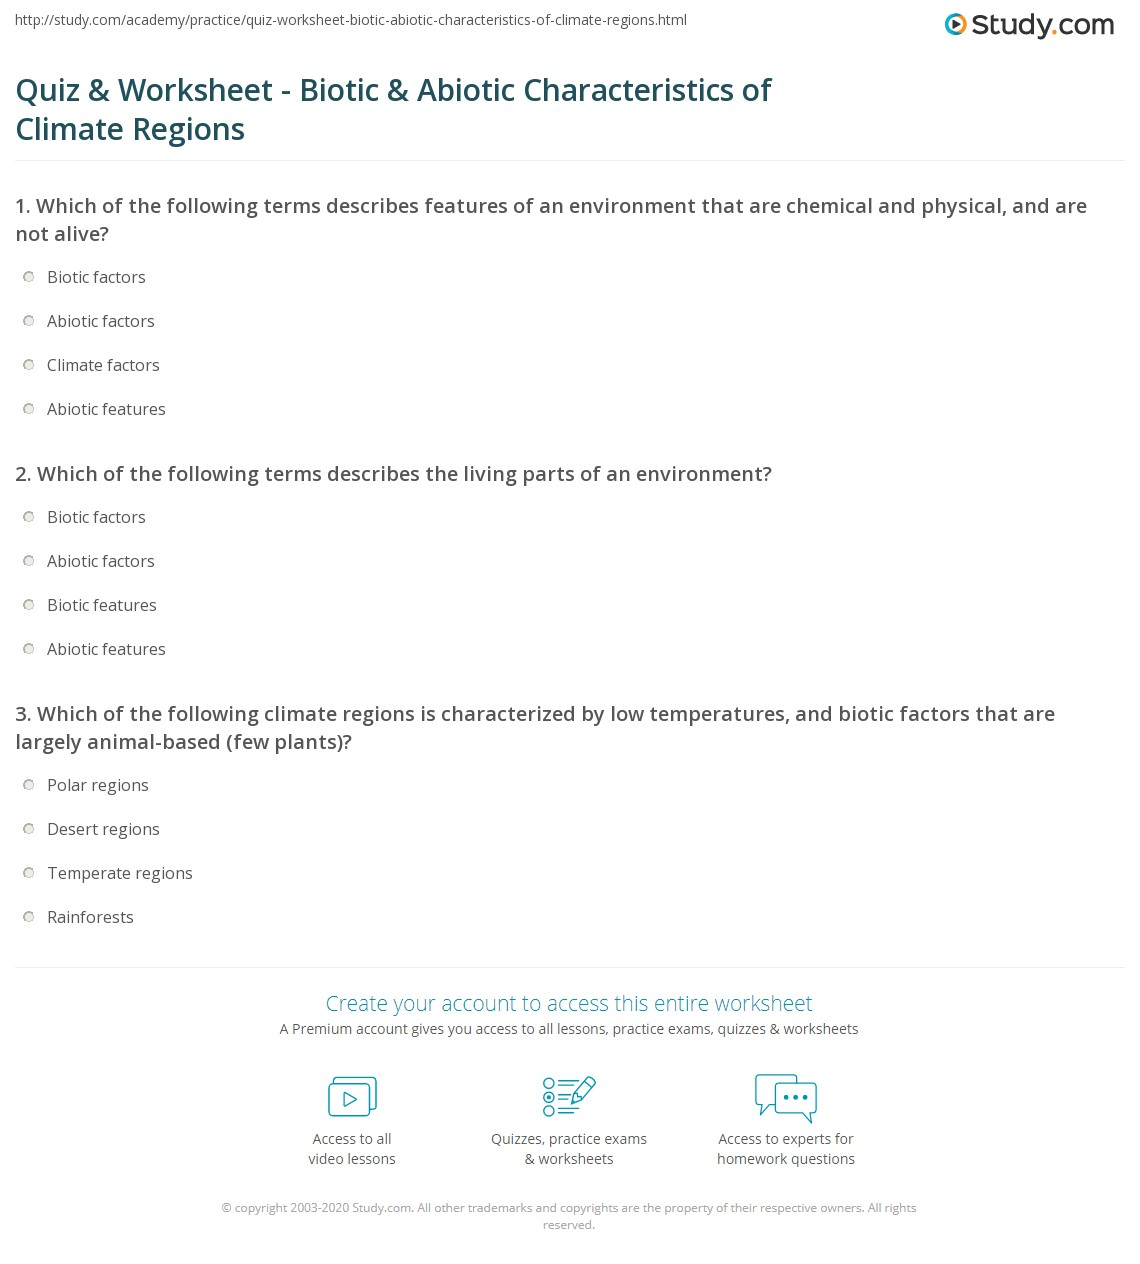 Quiz & Worksheet - Biotic & Abiotic Characteristics of Climate ...